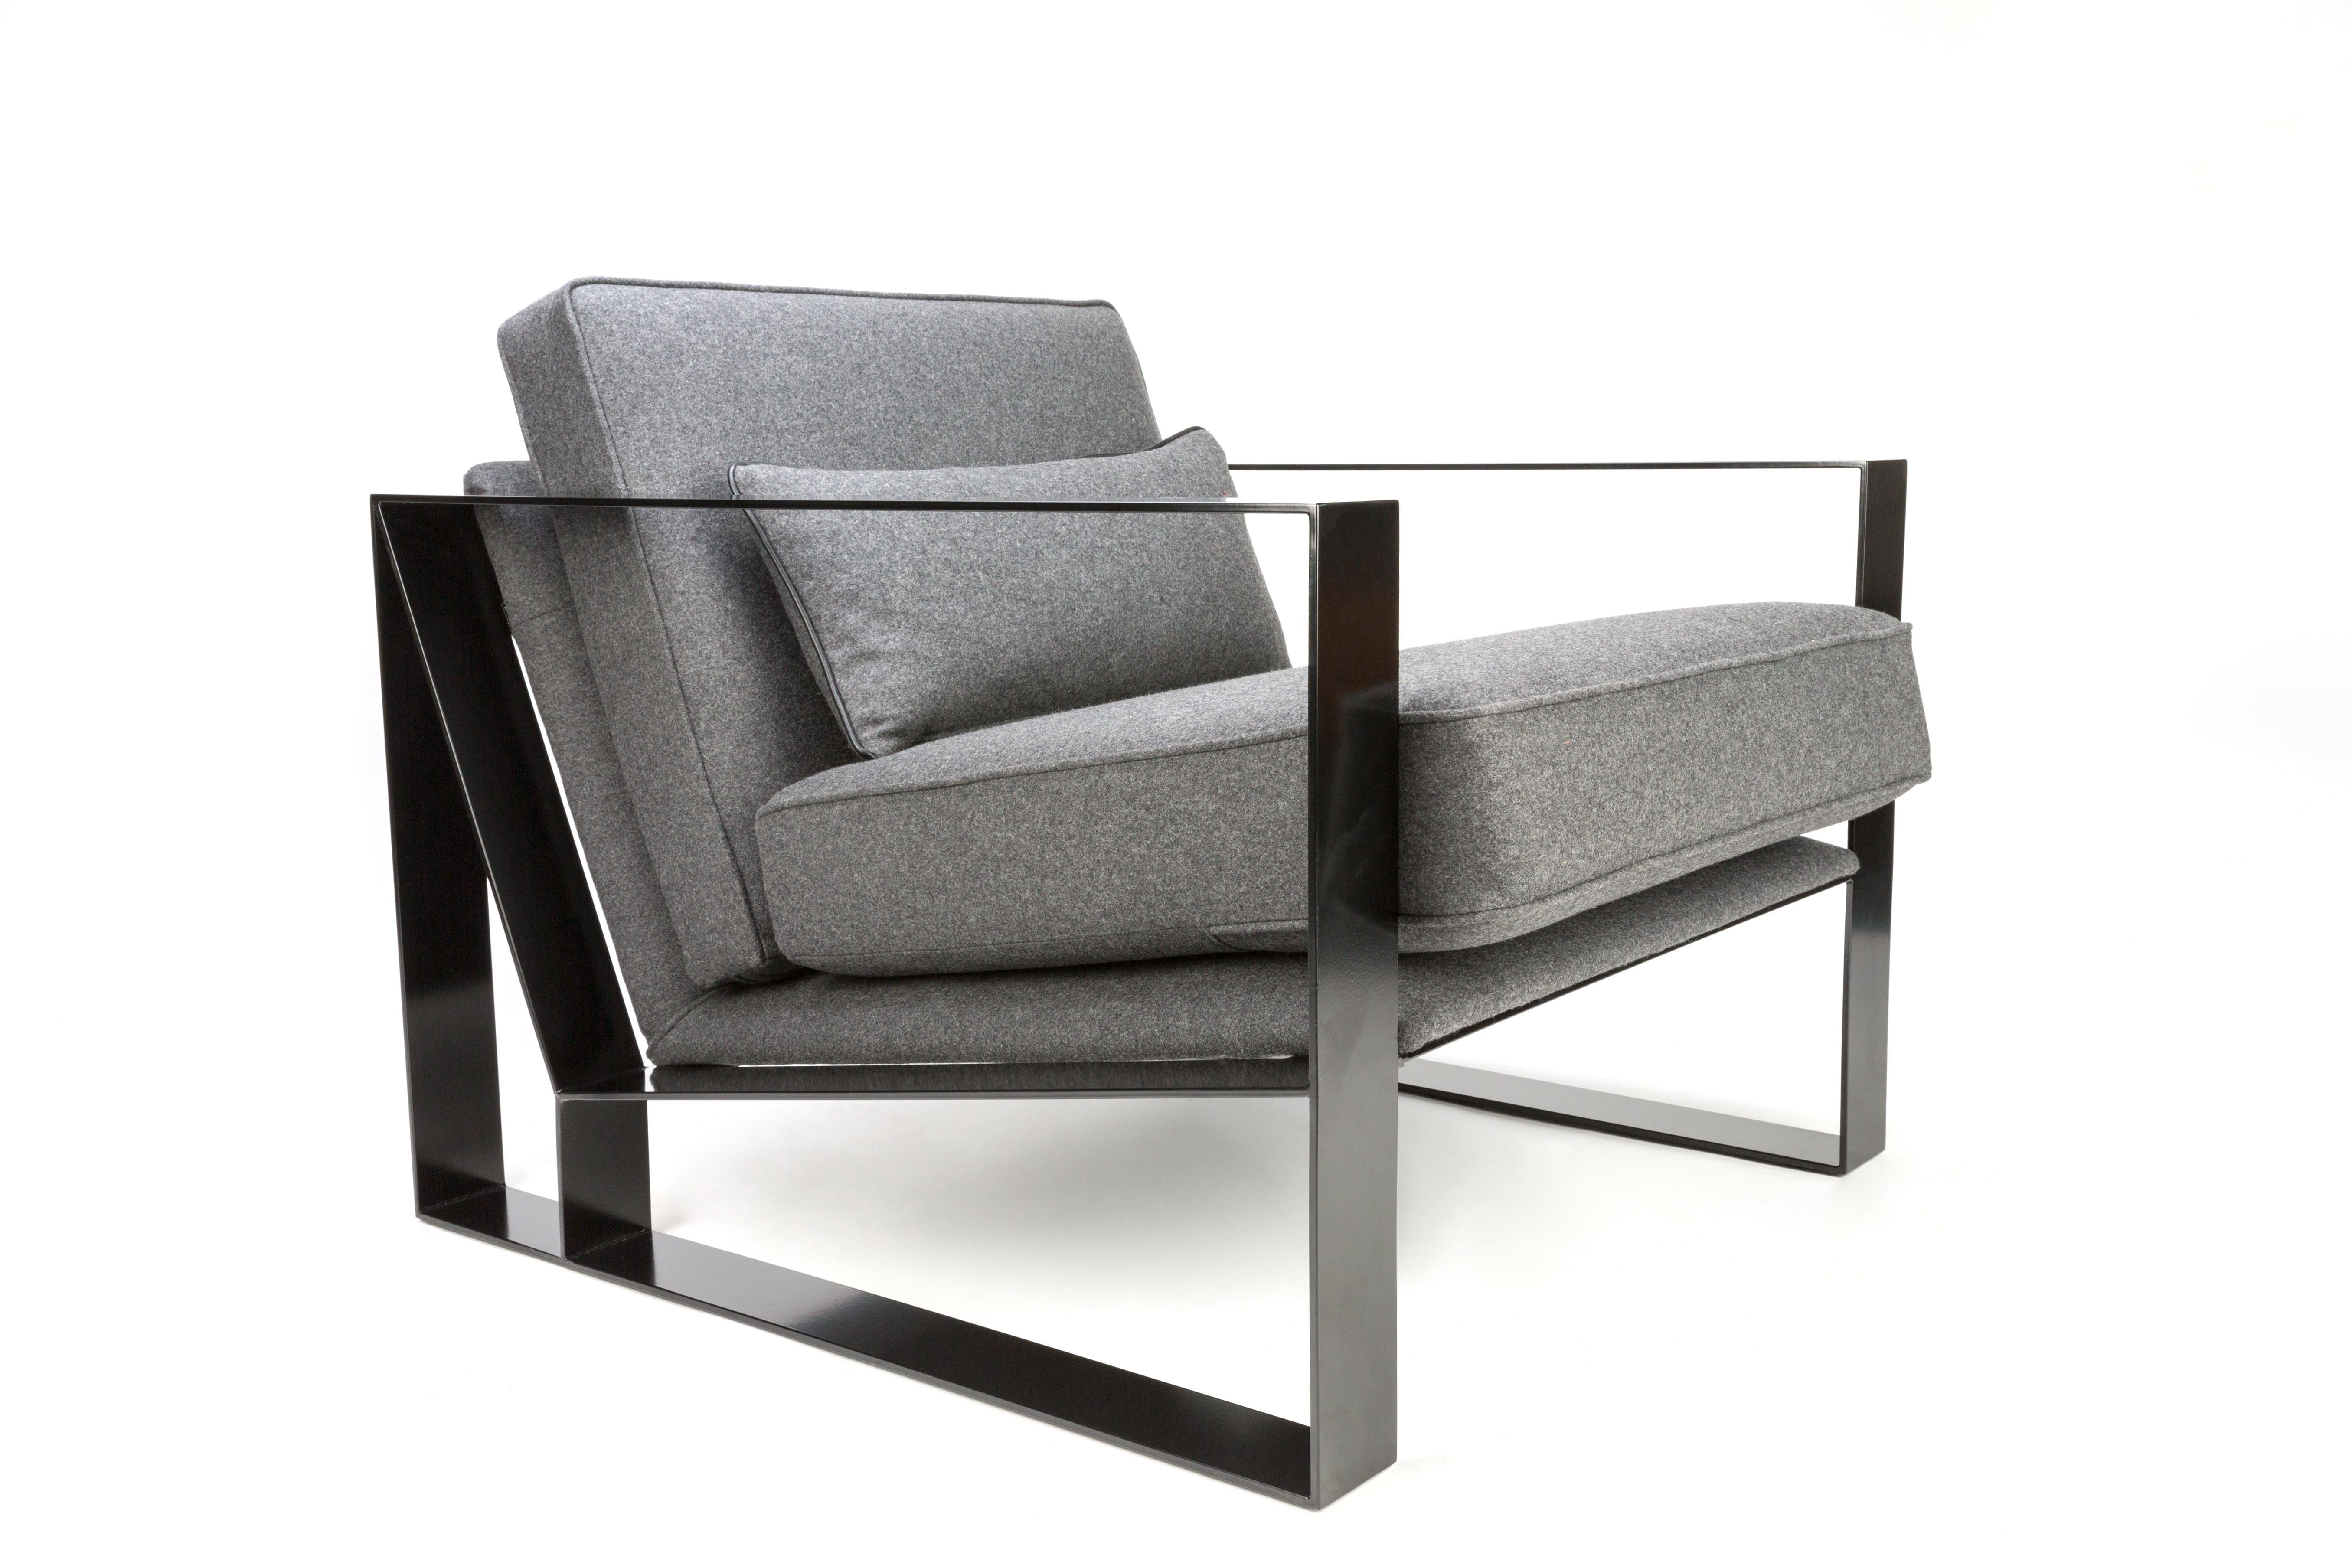 Delightful British Modern Industrial Cronos I Armchair In Steel Powder Coated And  Velvet For Sale